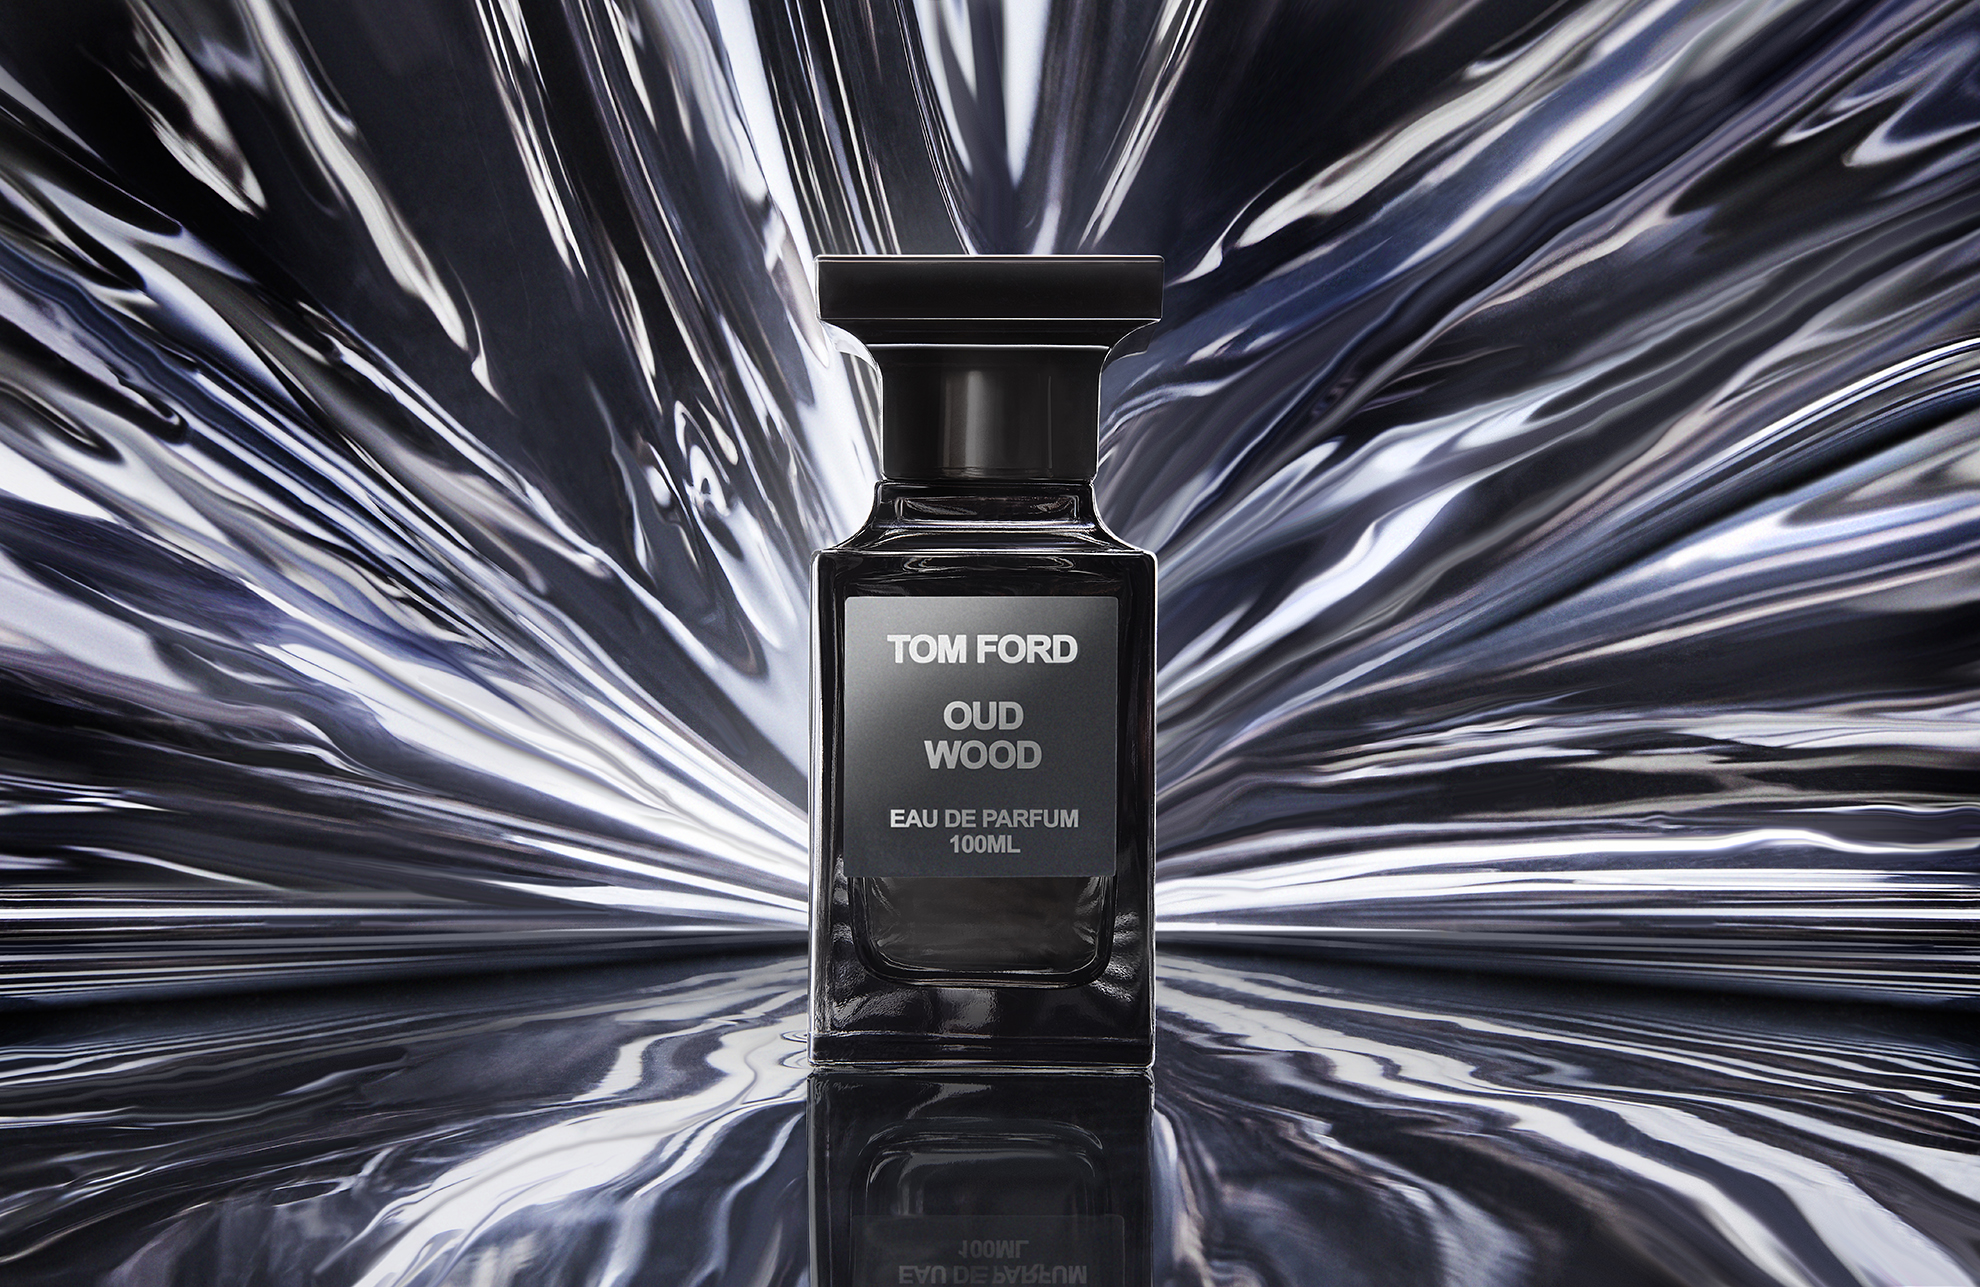 tom-ford-oud-wood-fragrance-photography-still-life-photographer-london-silver.jpg